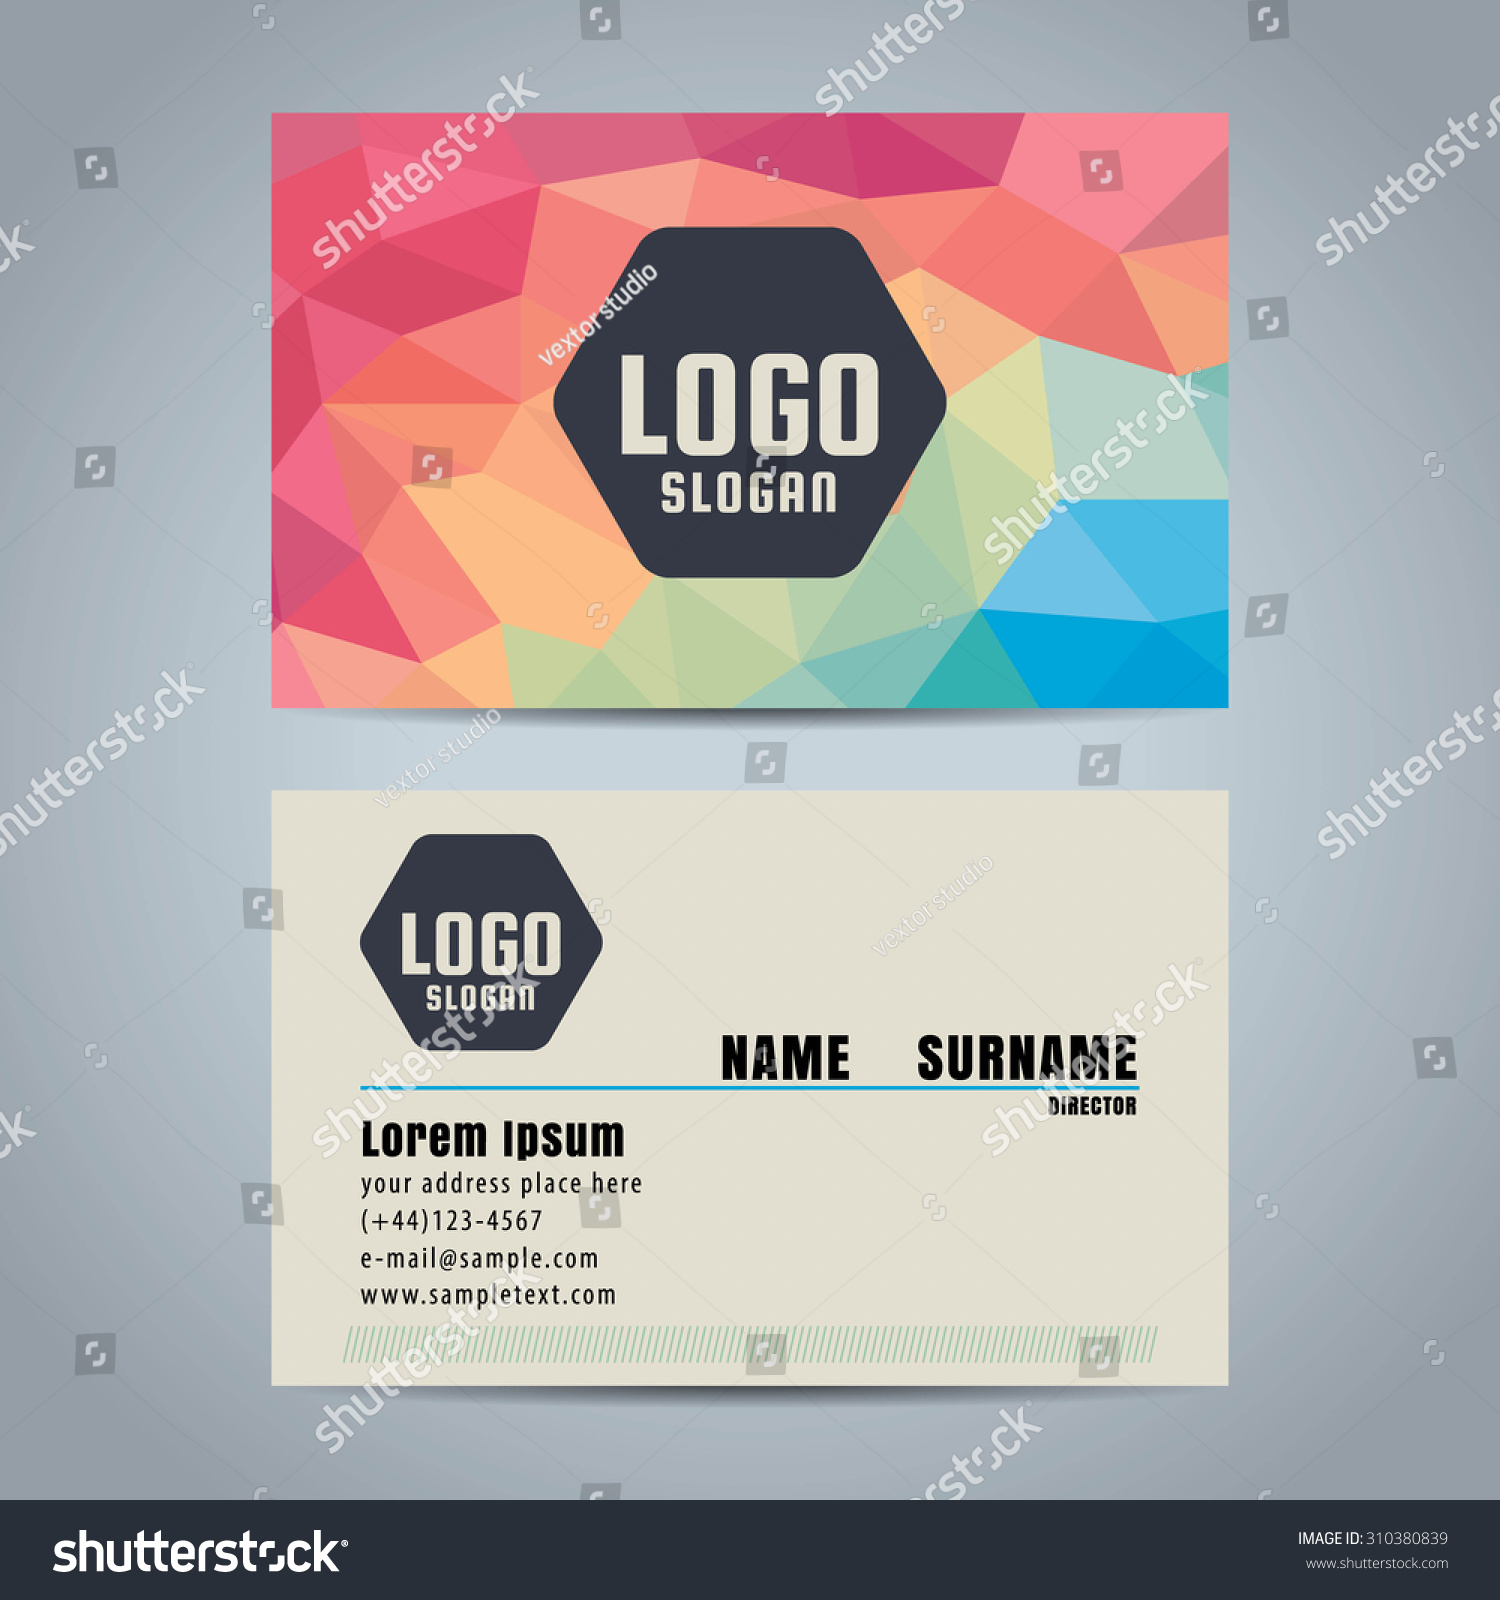 Clean Simple Modern Business Card Template Stock Photo (Photo ...